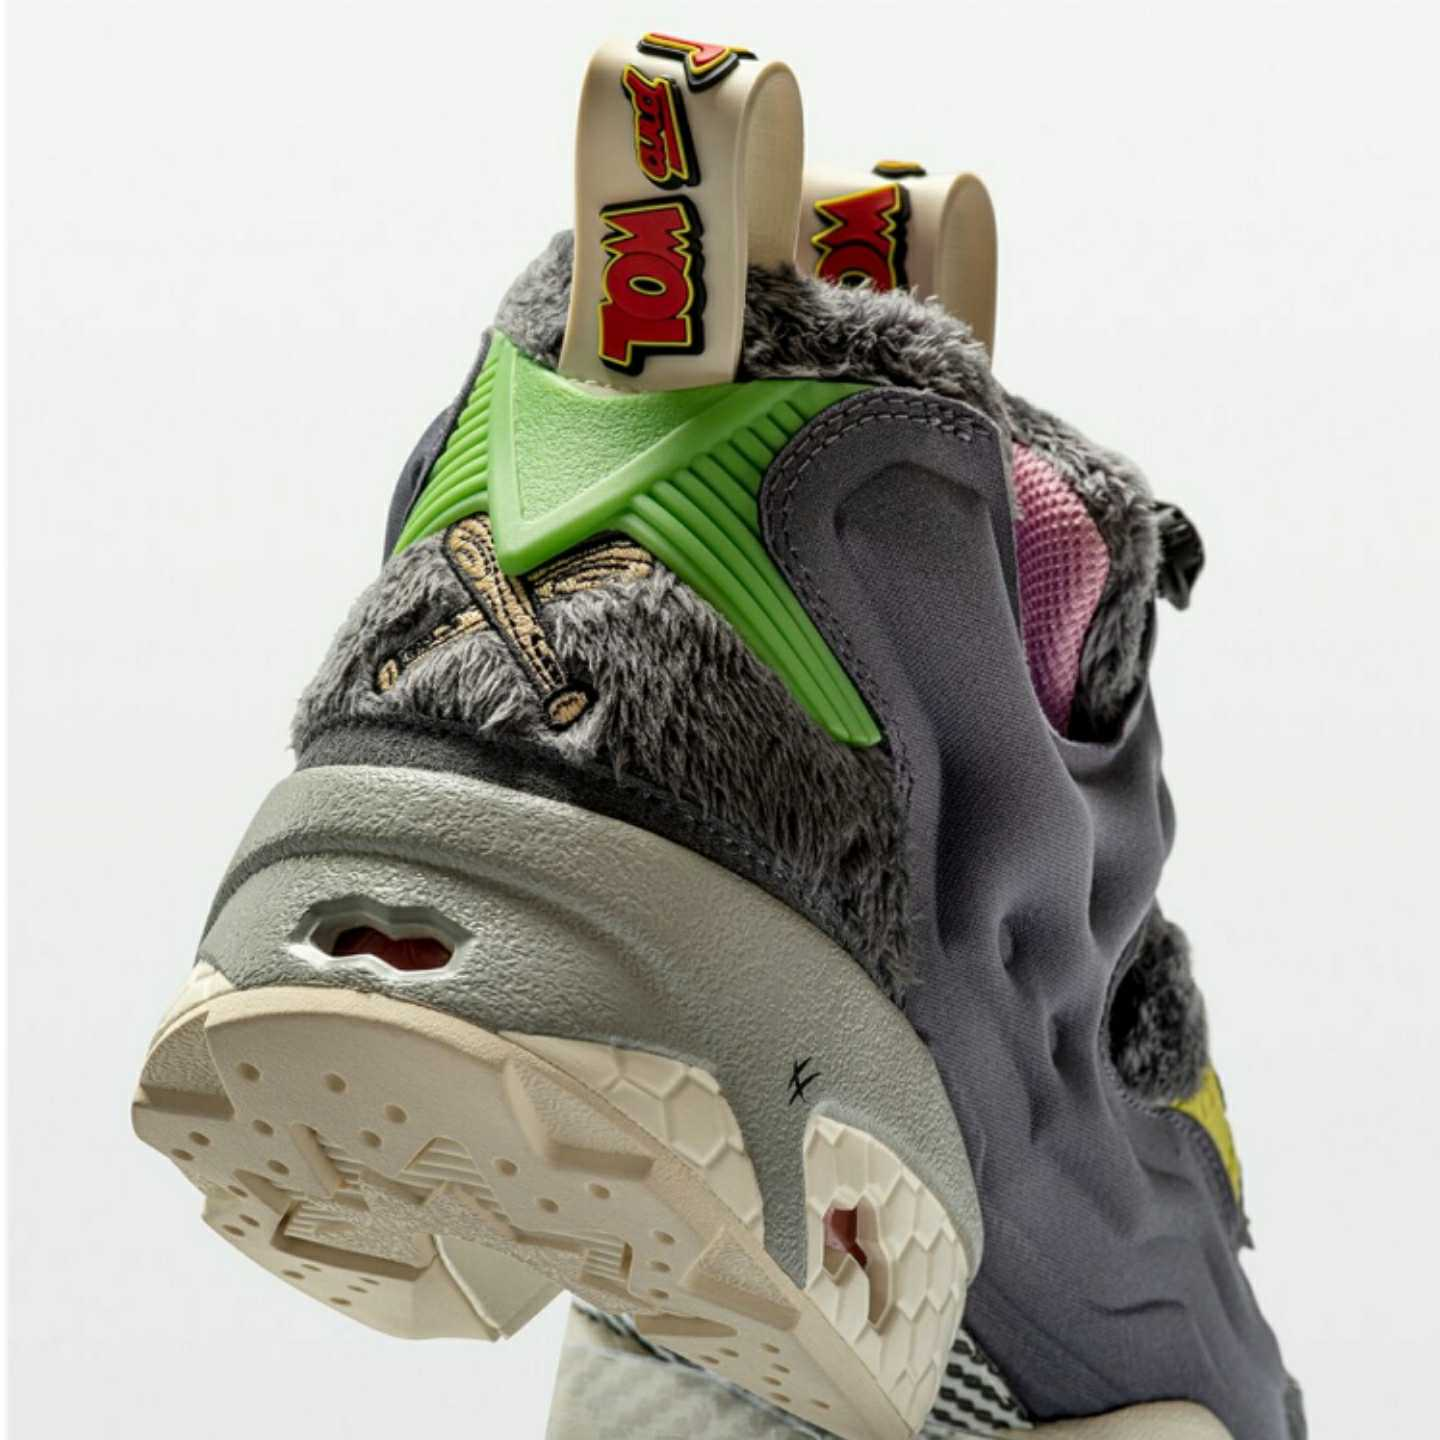 Reebok, Adidas, 360 MAGAZINE, cartoon, Tom & Jerry, Instapump Fury, unisex, apparel, collection